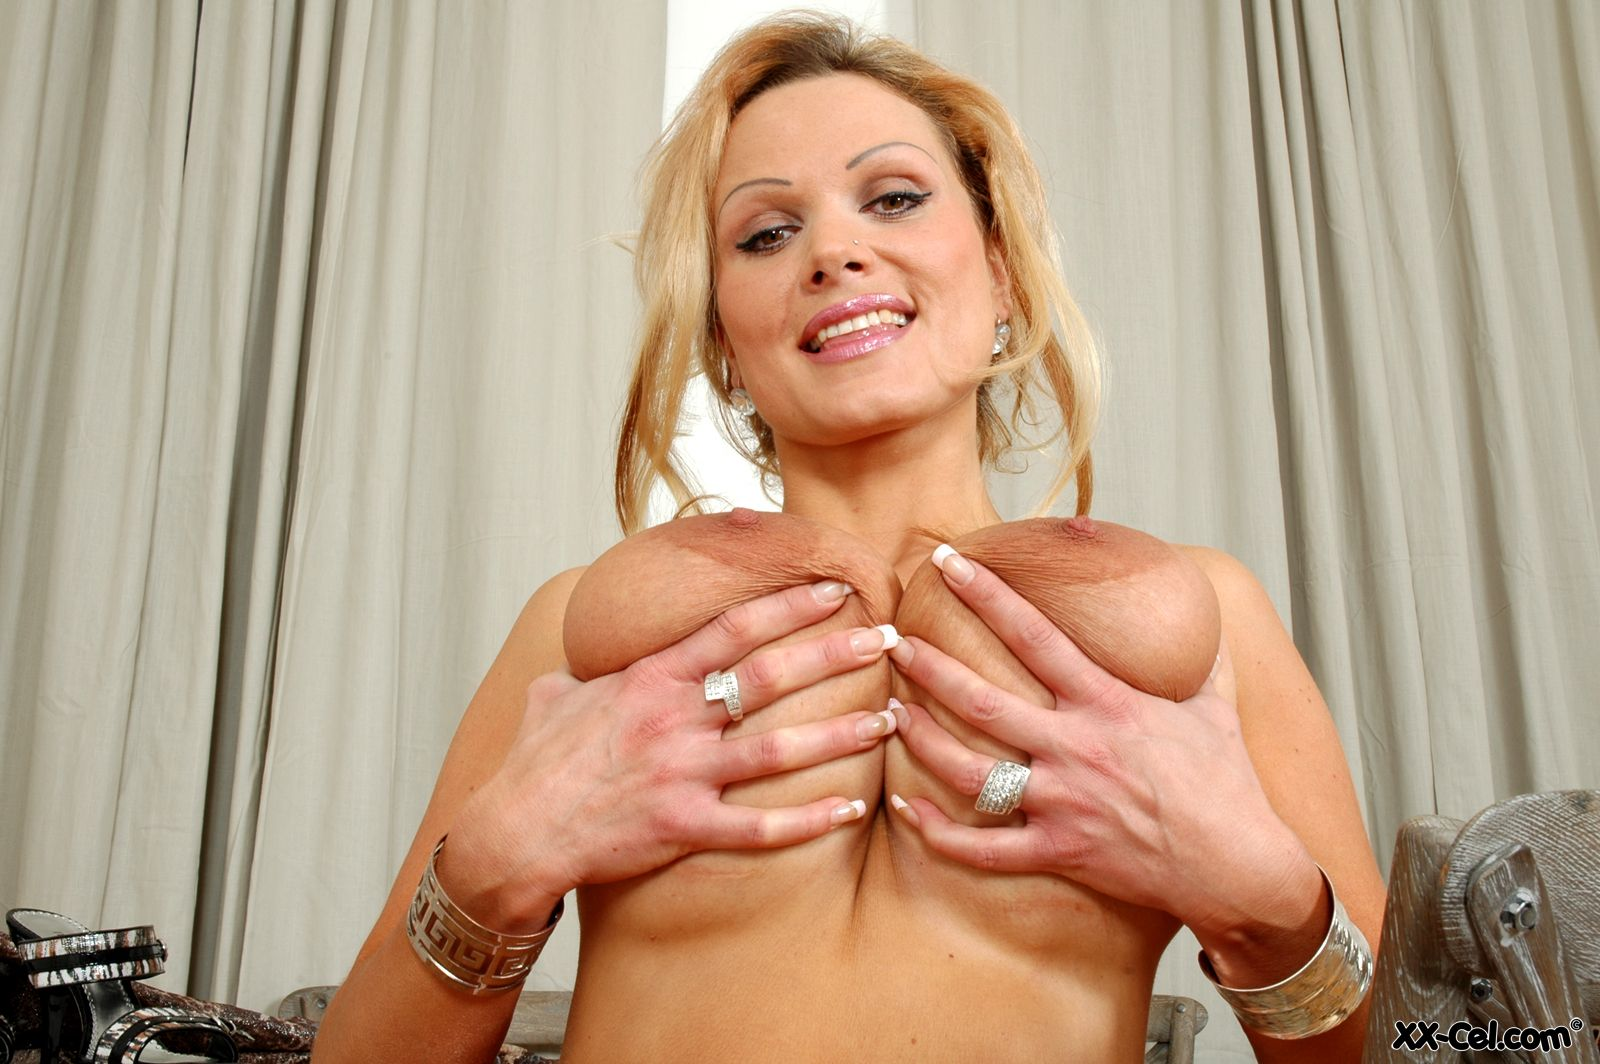 Hot milf lets the wind blow her skirt up 2